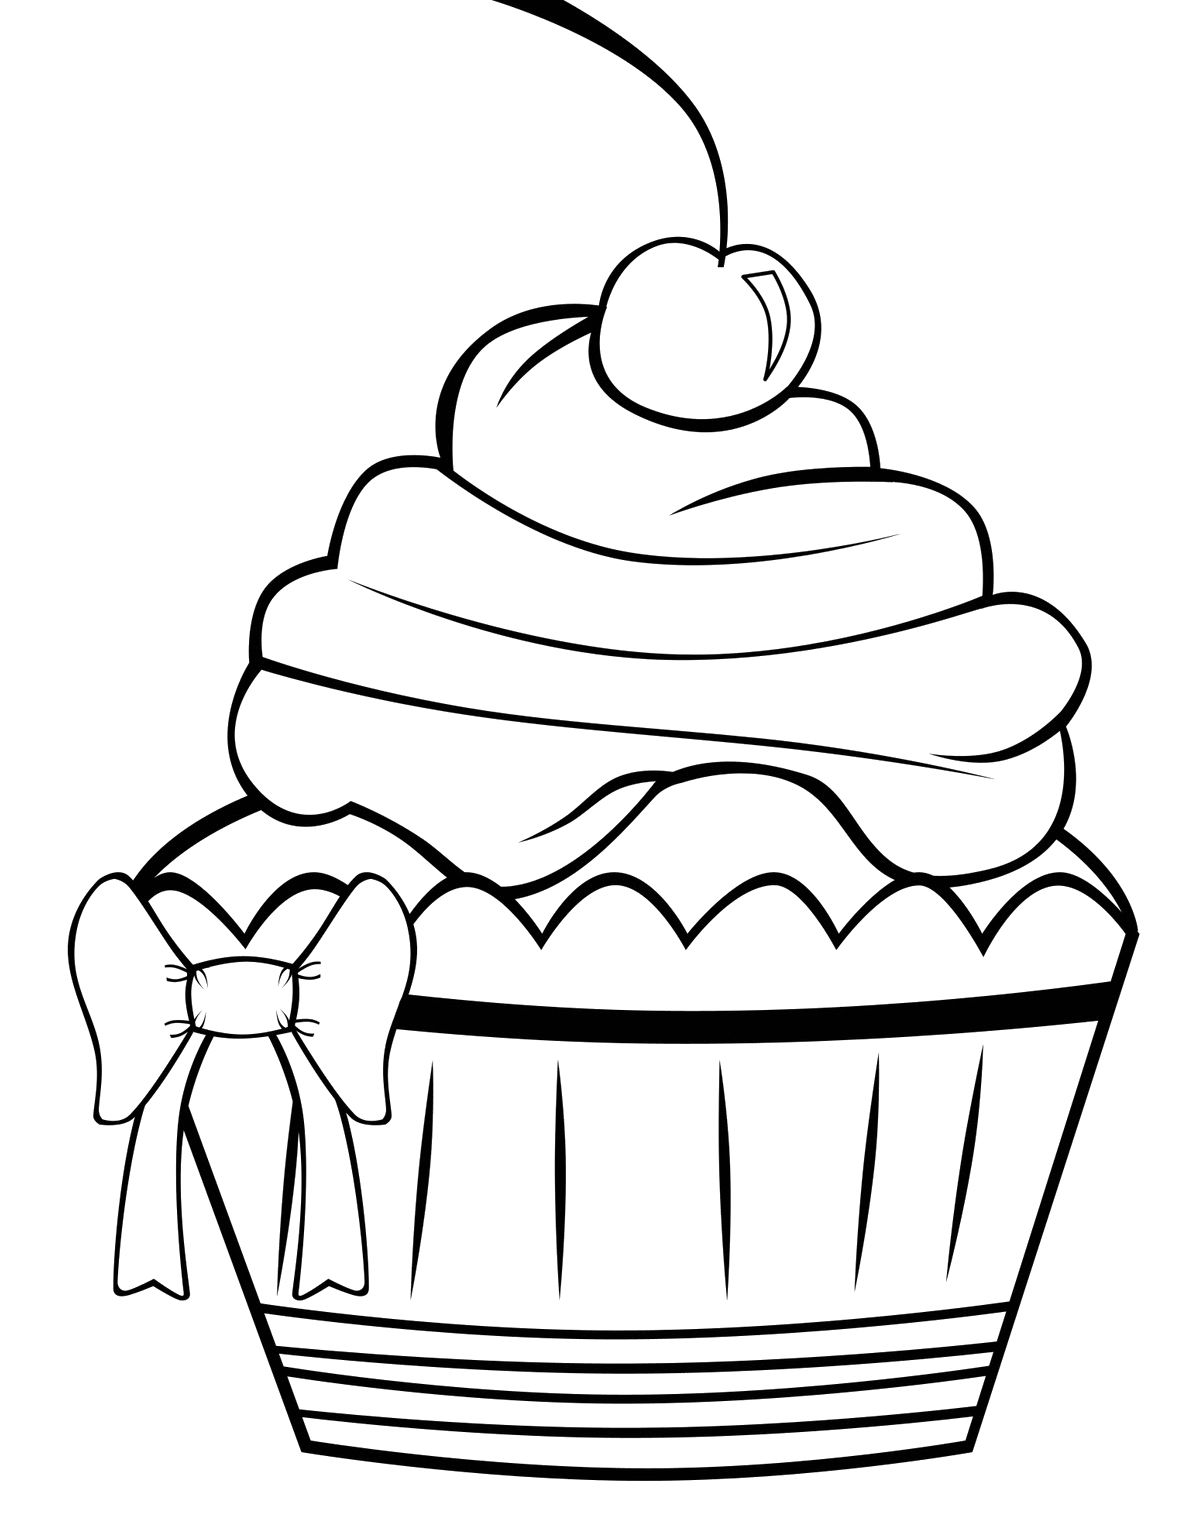 The Cupcake Decorate With Ribbon Coloring Pages